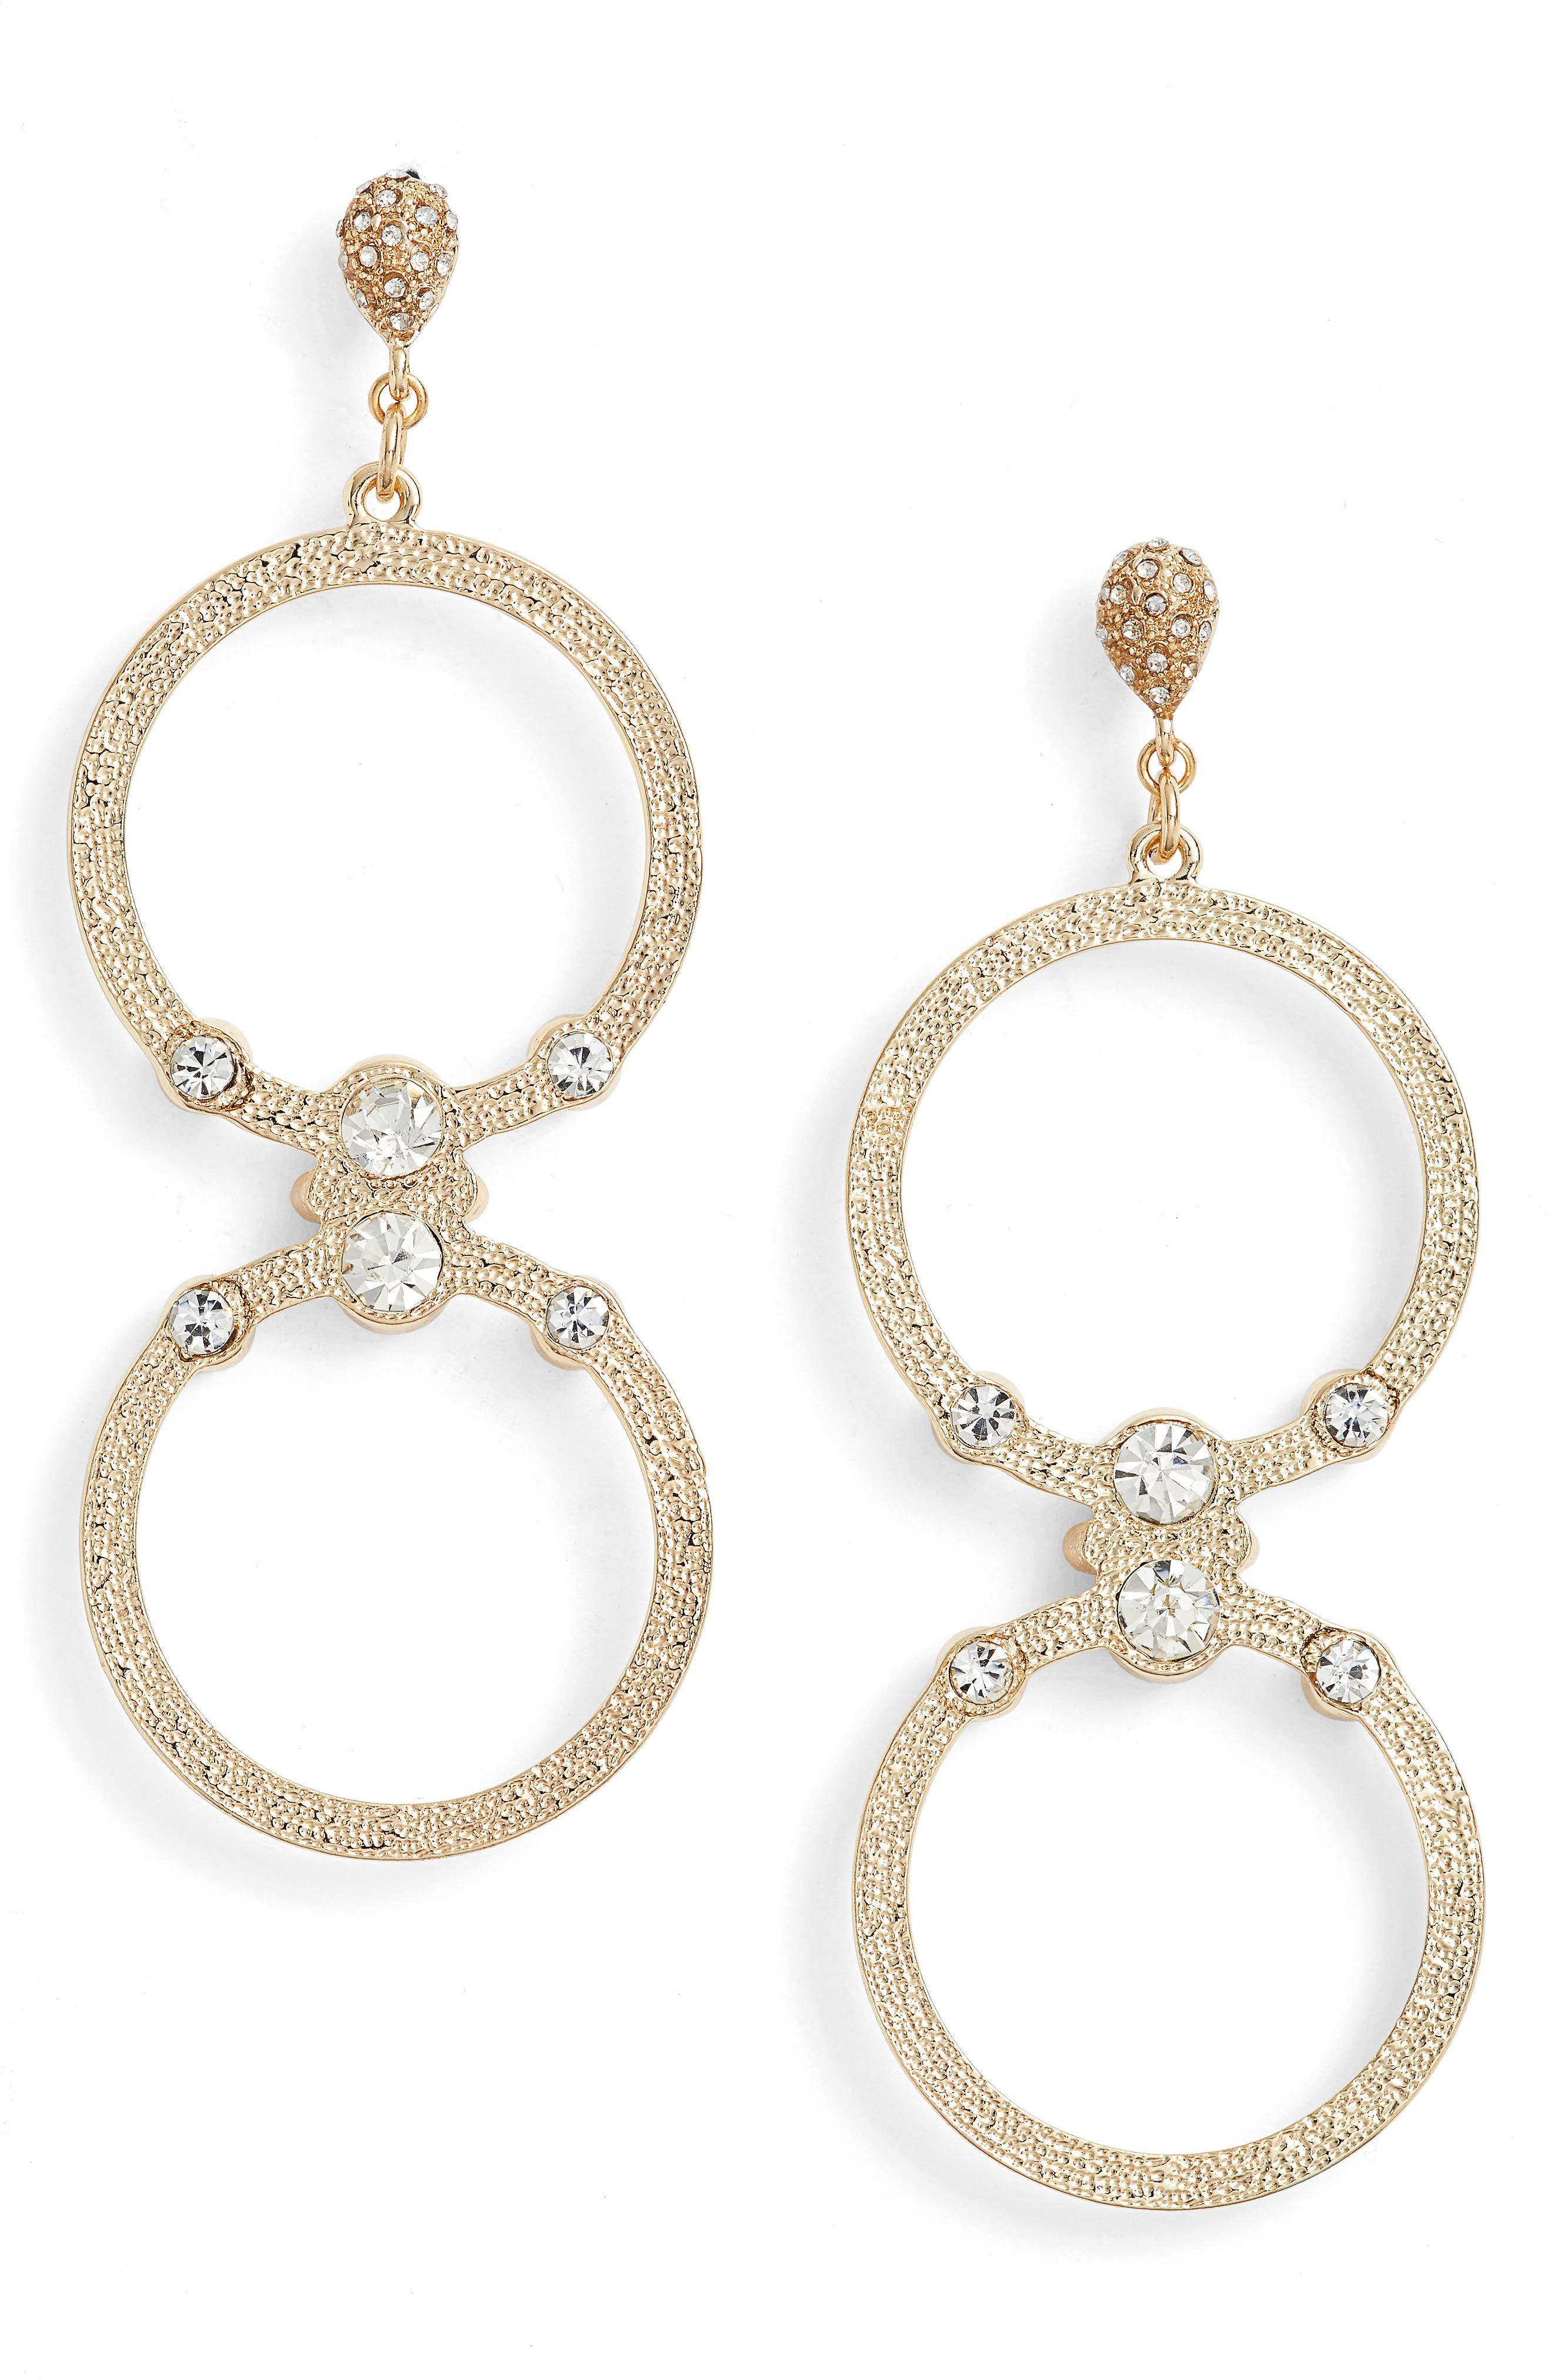 Double Hoop Earrings,                         Main,                         color, 710